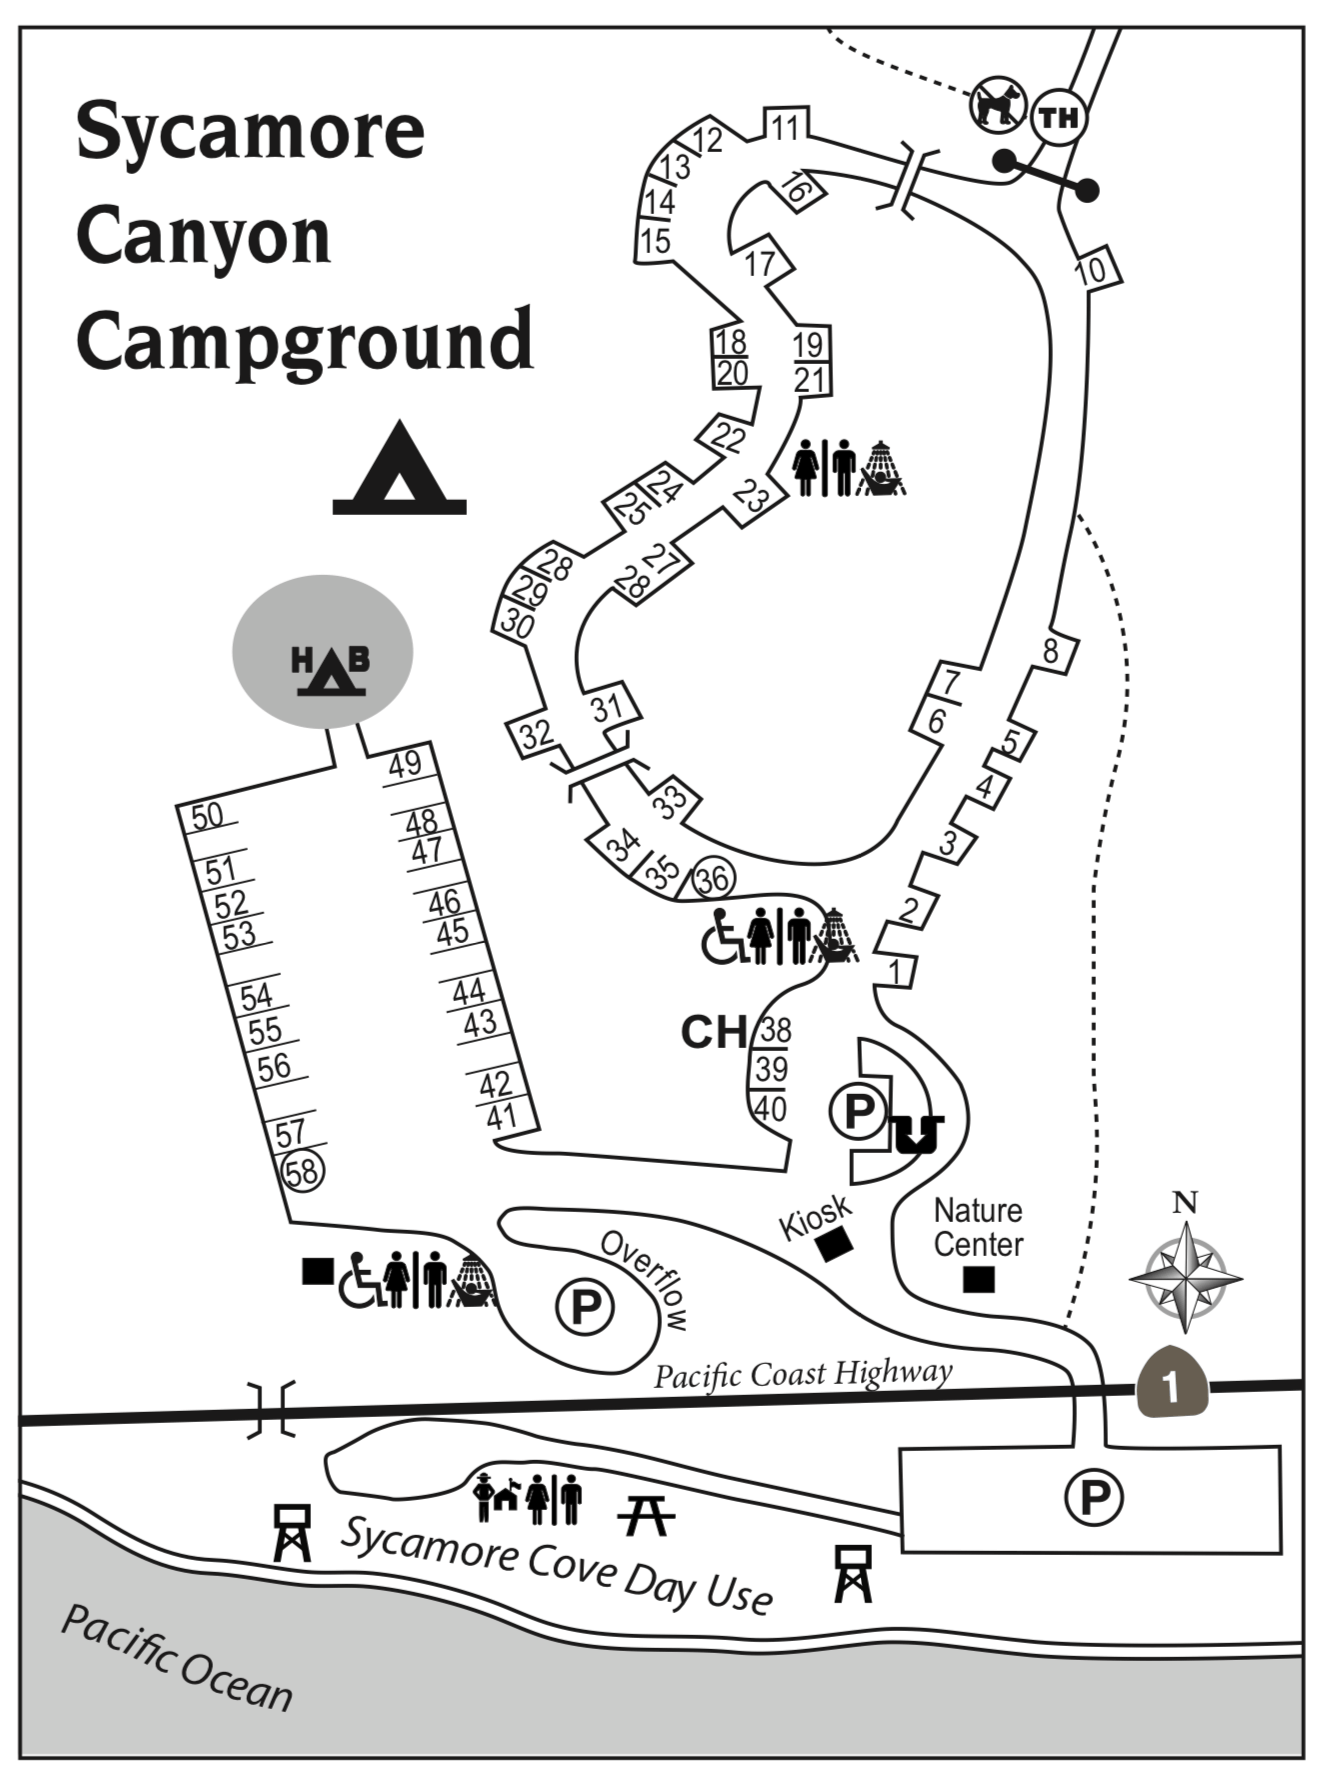 Point Mugu California Map.Sycamore Canyon Campsite Photo And Camping Information